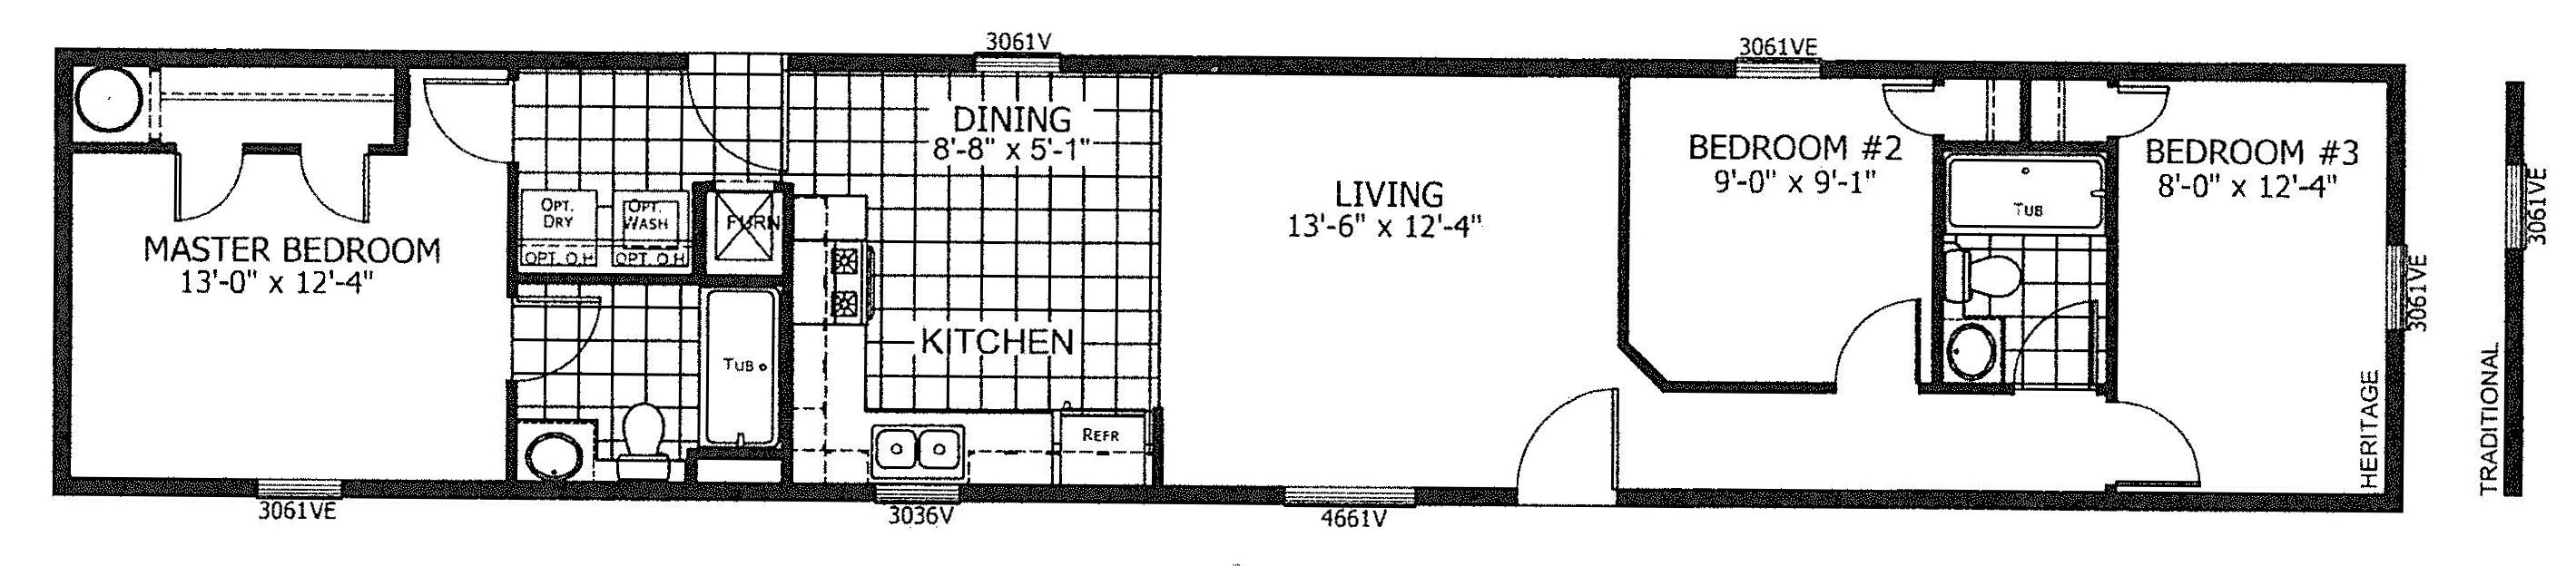 Floorplan of Model 19-7998